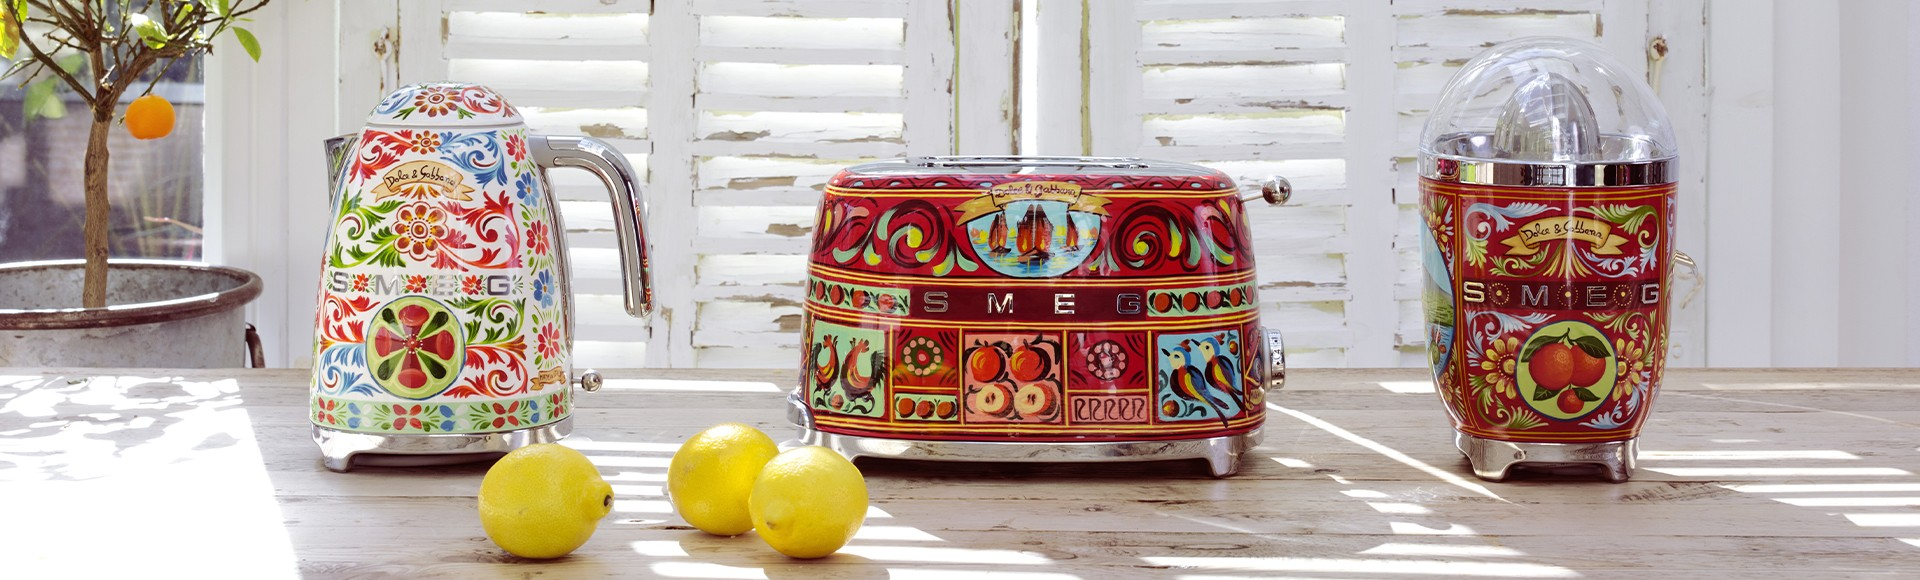 Συλλογή Sicily is my love by Smeg και Dolce&Gabbana